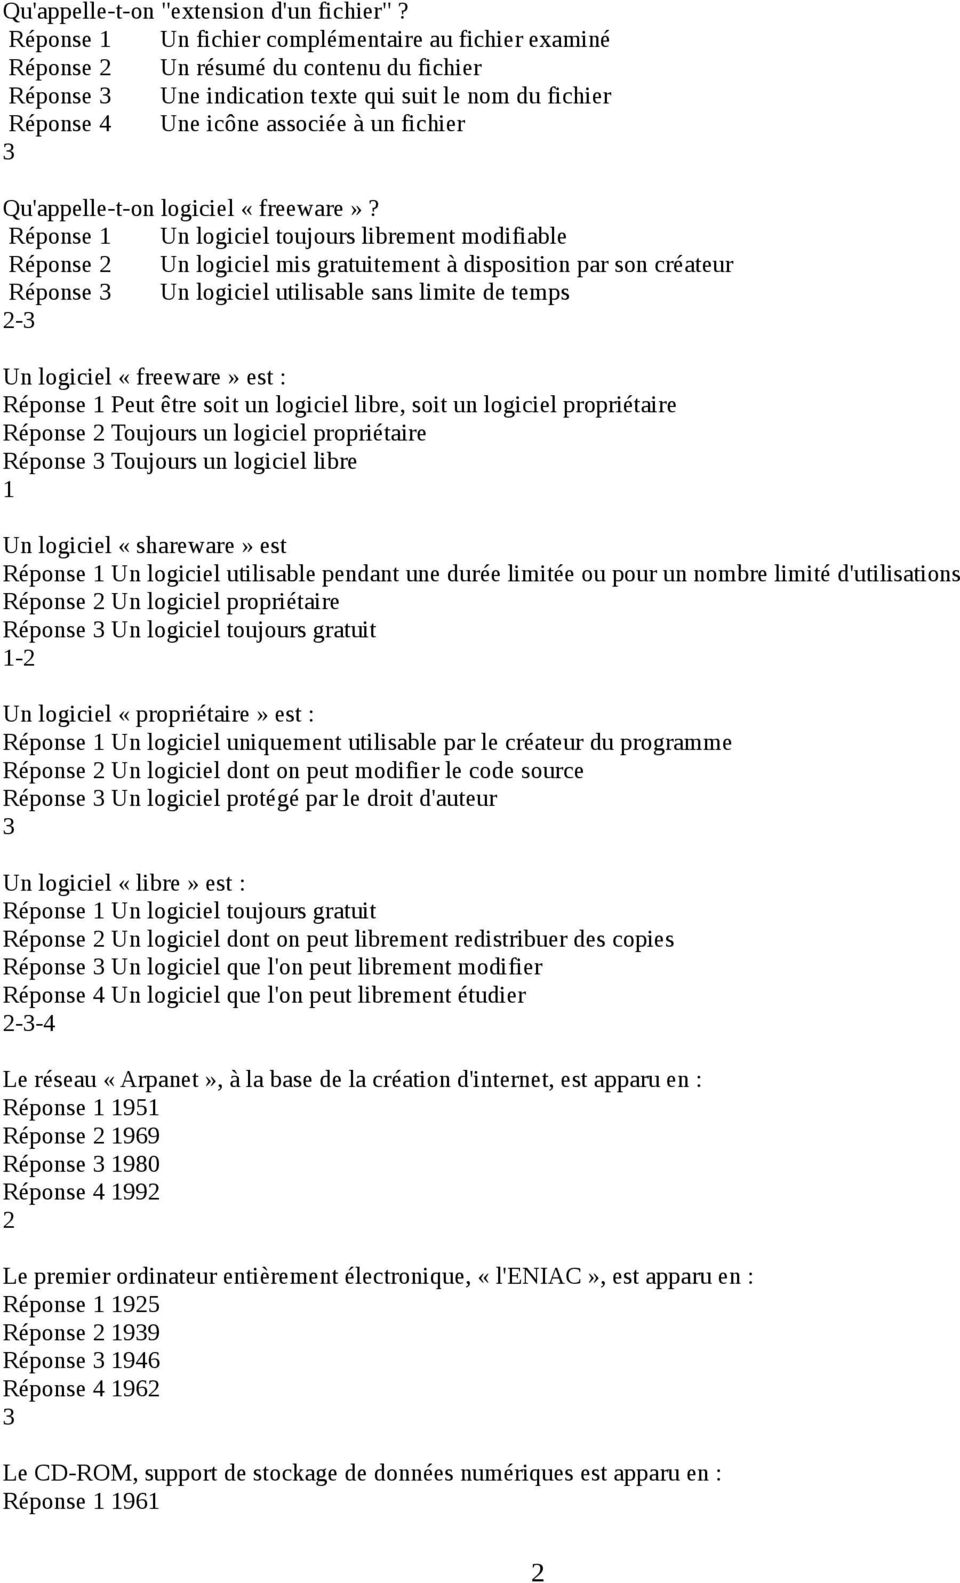 Qu'appelle-t-on logiciel «freeware»?